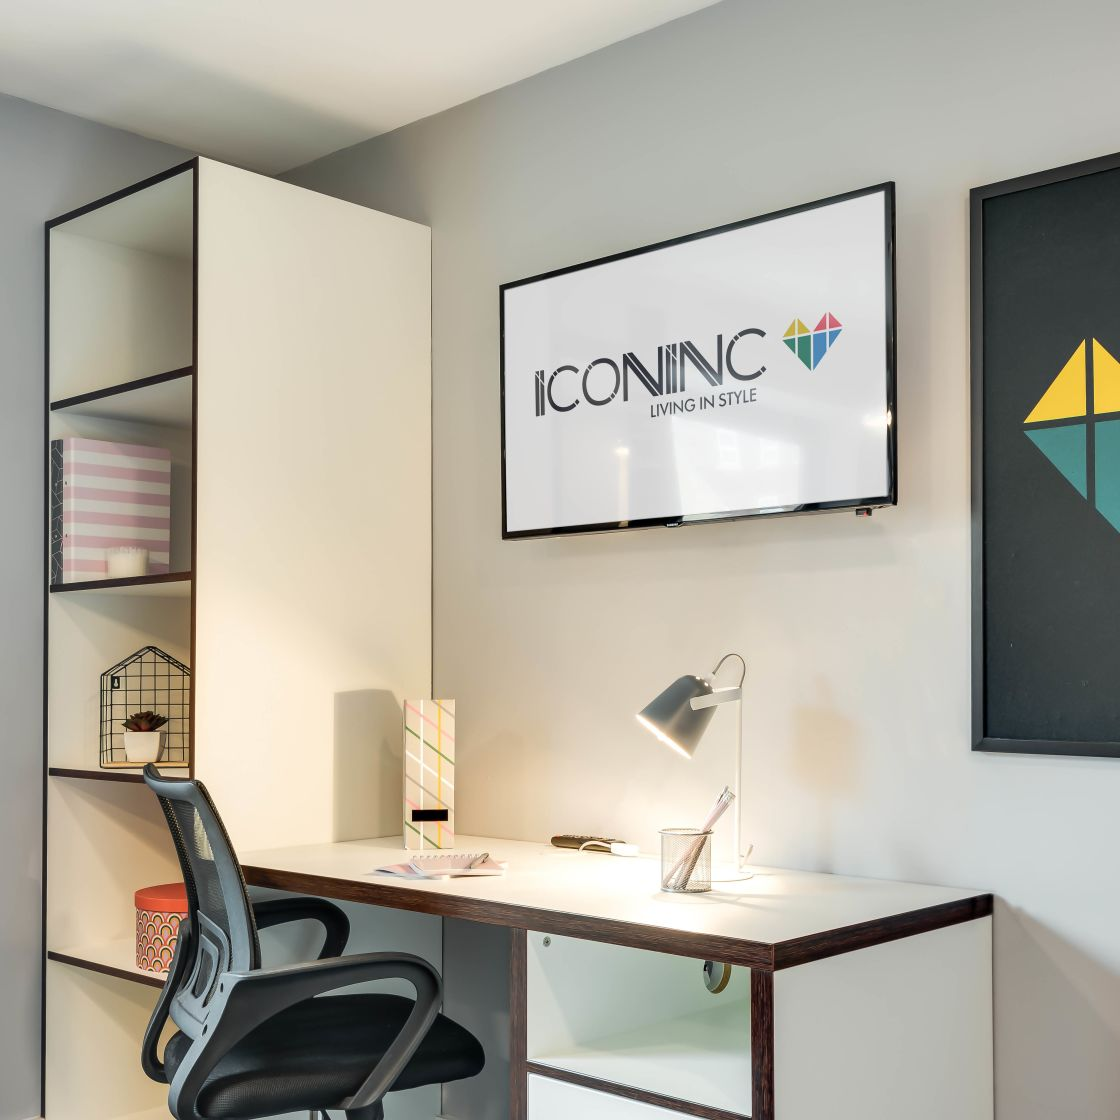 Elegance Student Apartment in Leeds. Desk and flat screen TV. IconInc, The Edge